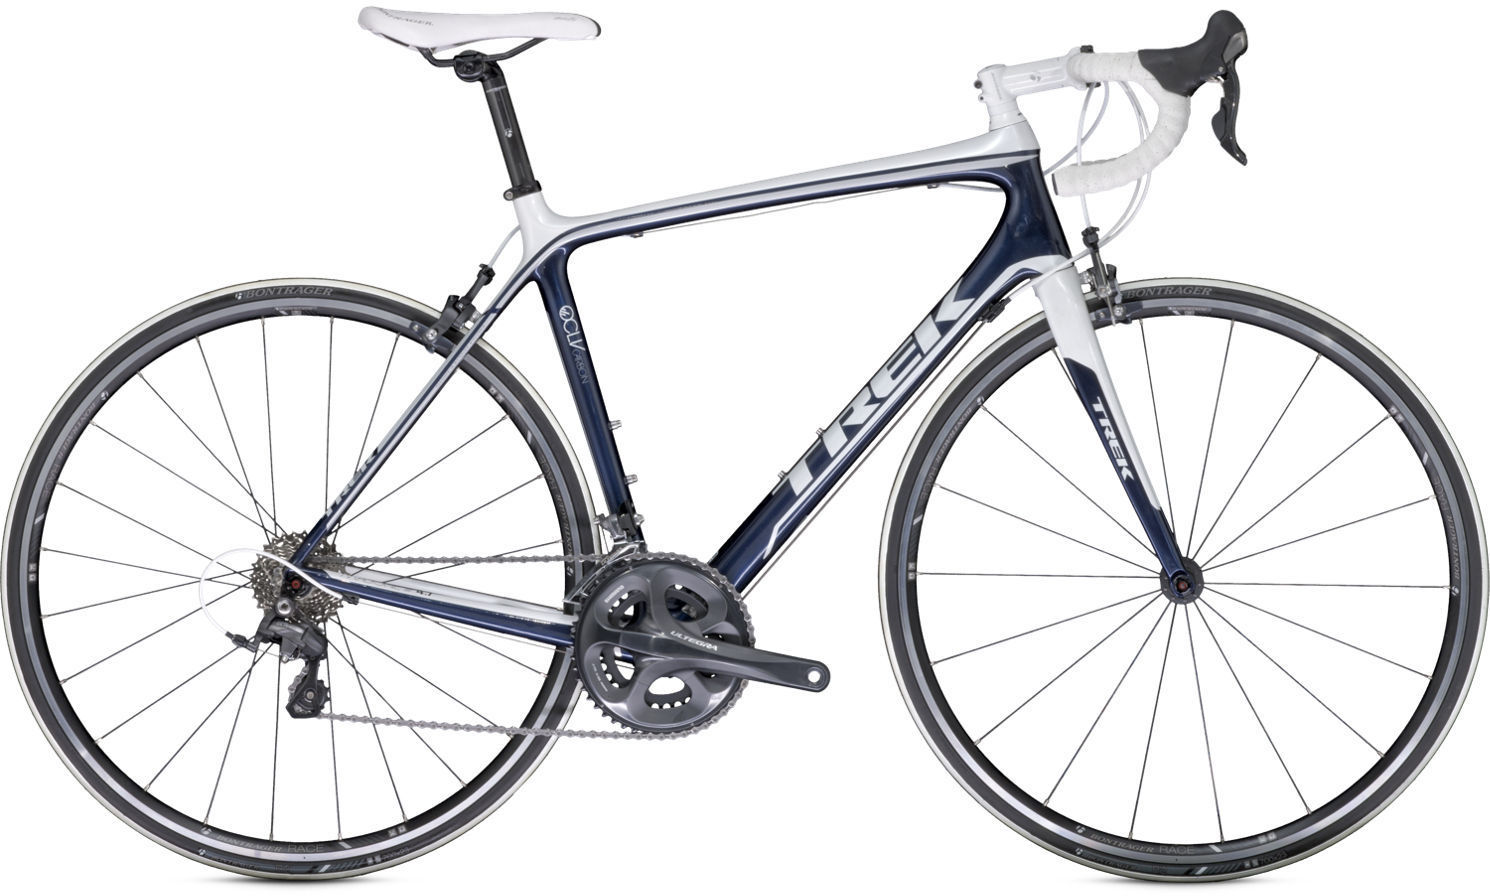 Trek Madone 4.7 2013–2014 review - The Bike List